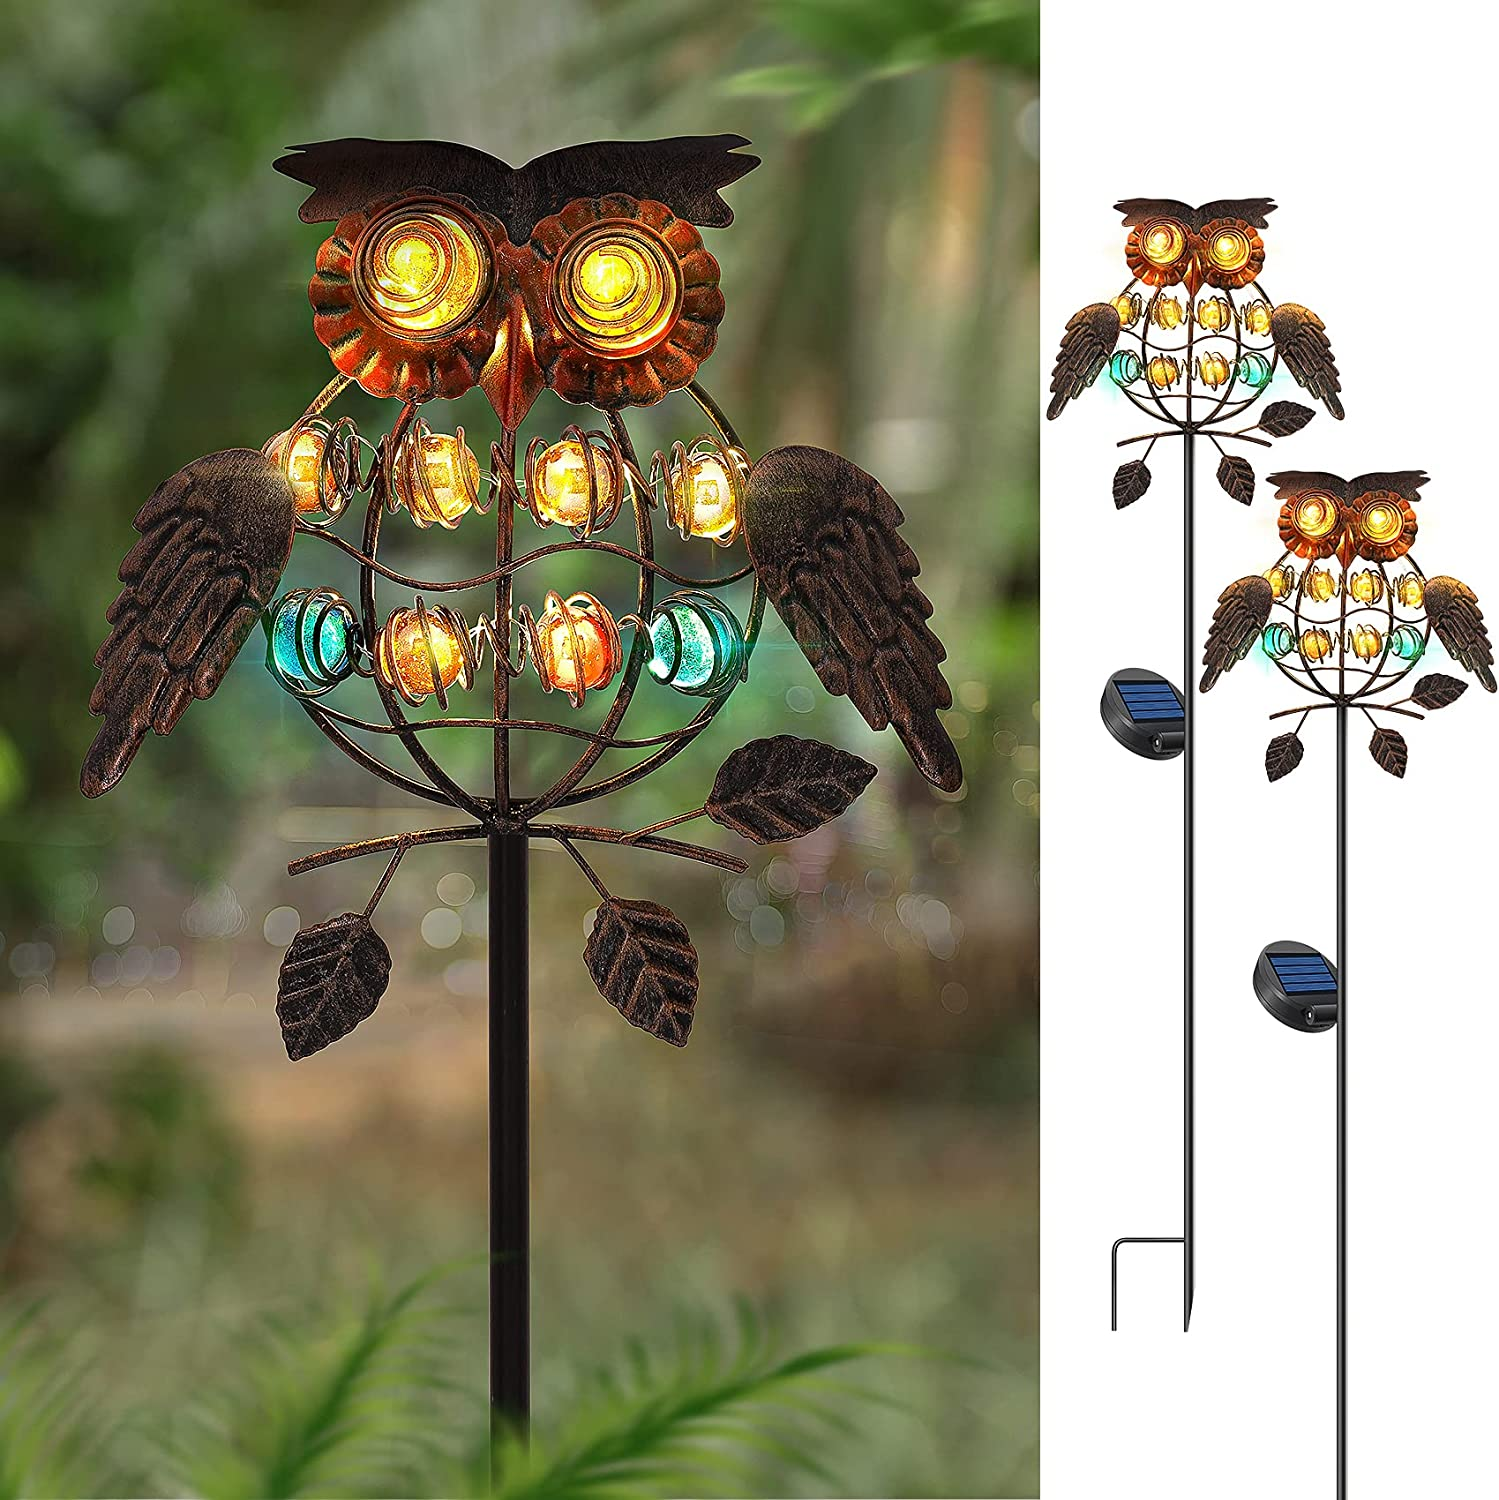 Solar Garden Lights, Solar Lights Outdoor Decorative, Owl Metal Stakes Light Solar Powered, LED Pathway Decoration Waterproof Landscape Lighting for Lawn Patio Walkway Yard Decor - 2 Pack